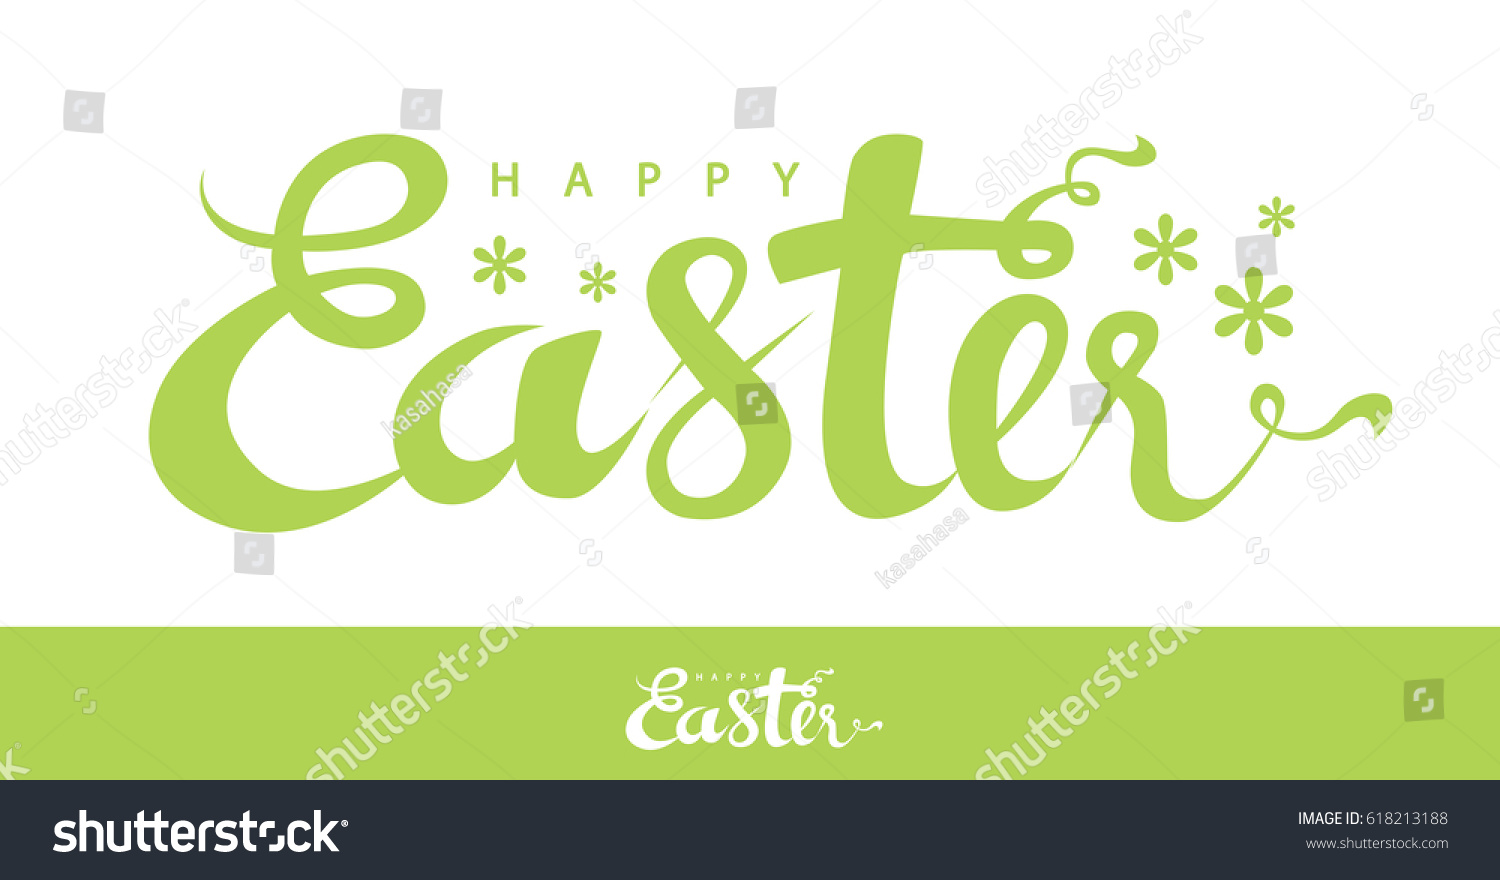 Easter text flower symbol isolated on stock vector 618213188 easter text with flower symbol isolated on white background vector illustration hand drawn design biocorpaavc Choice Image